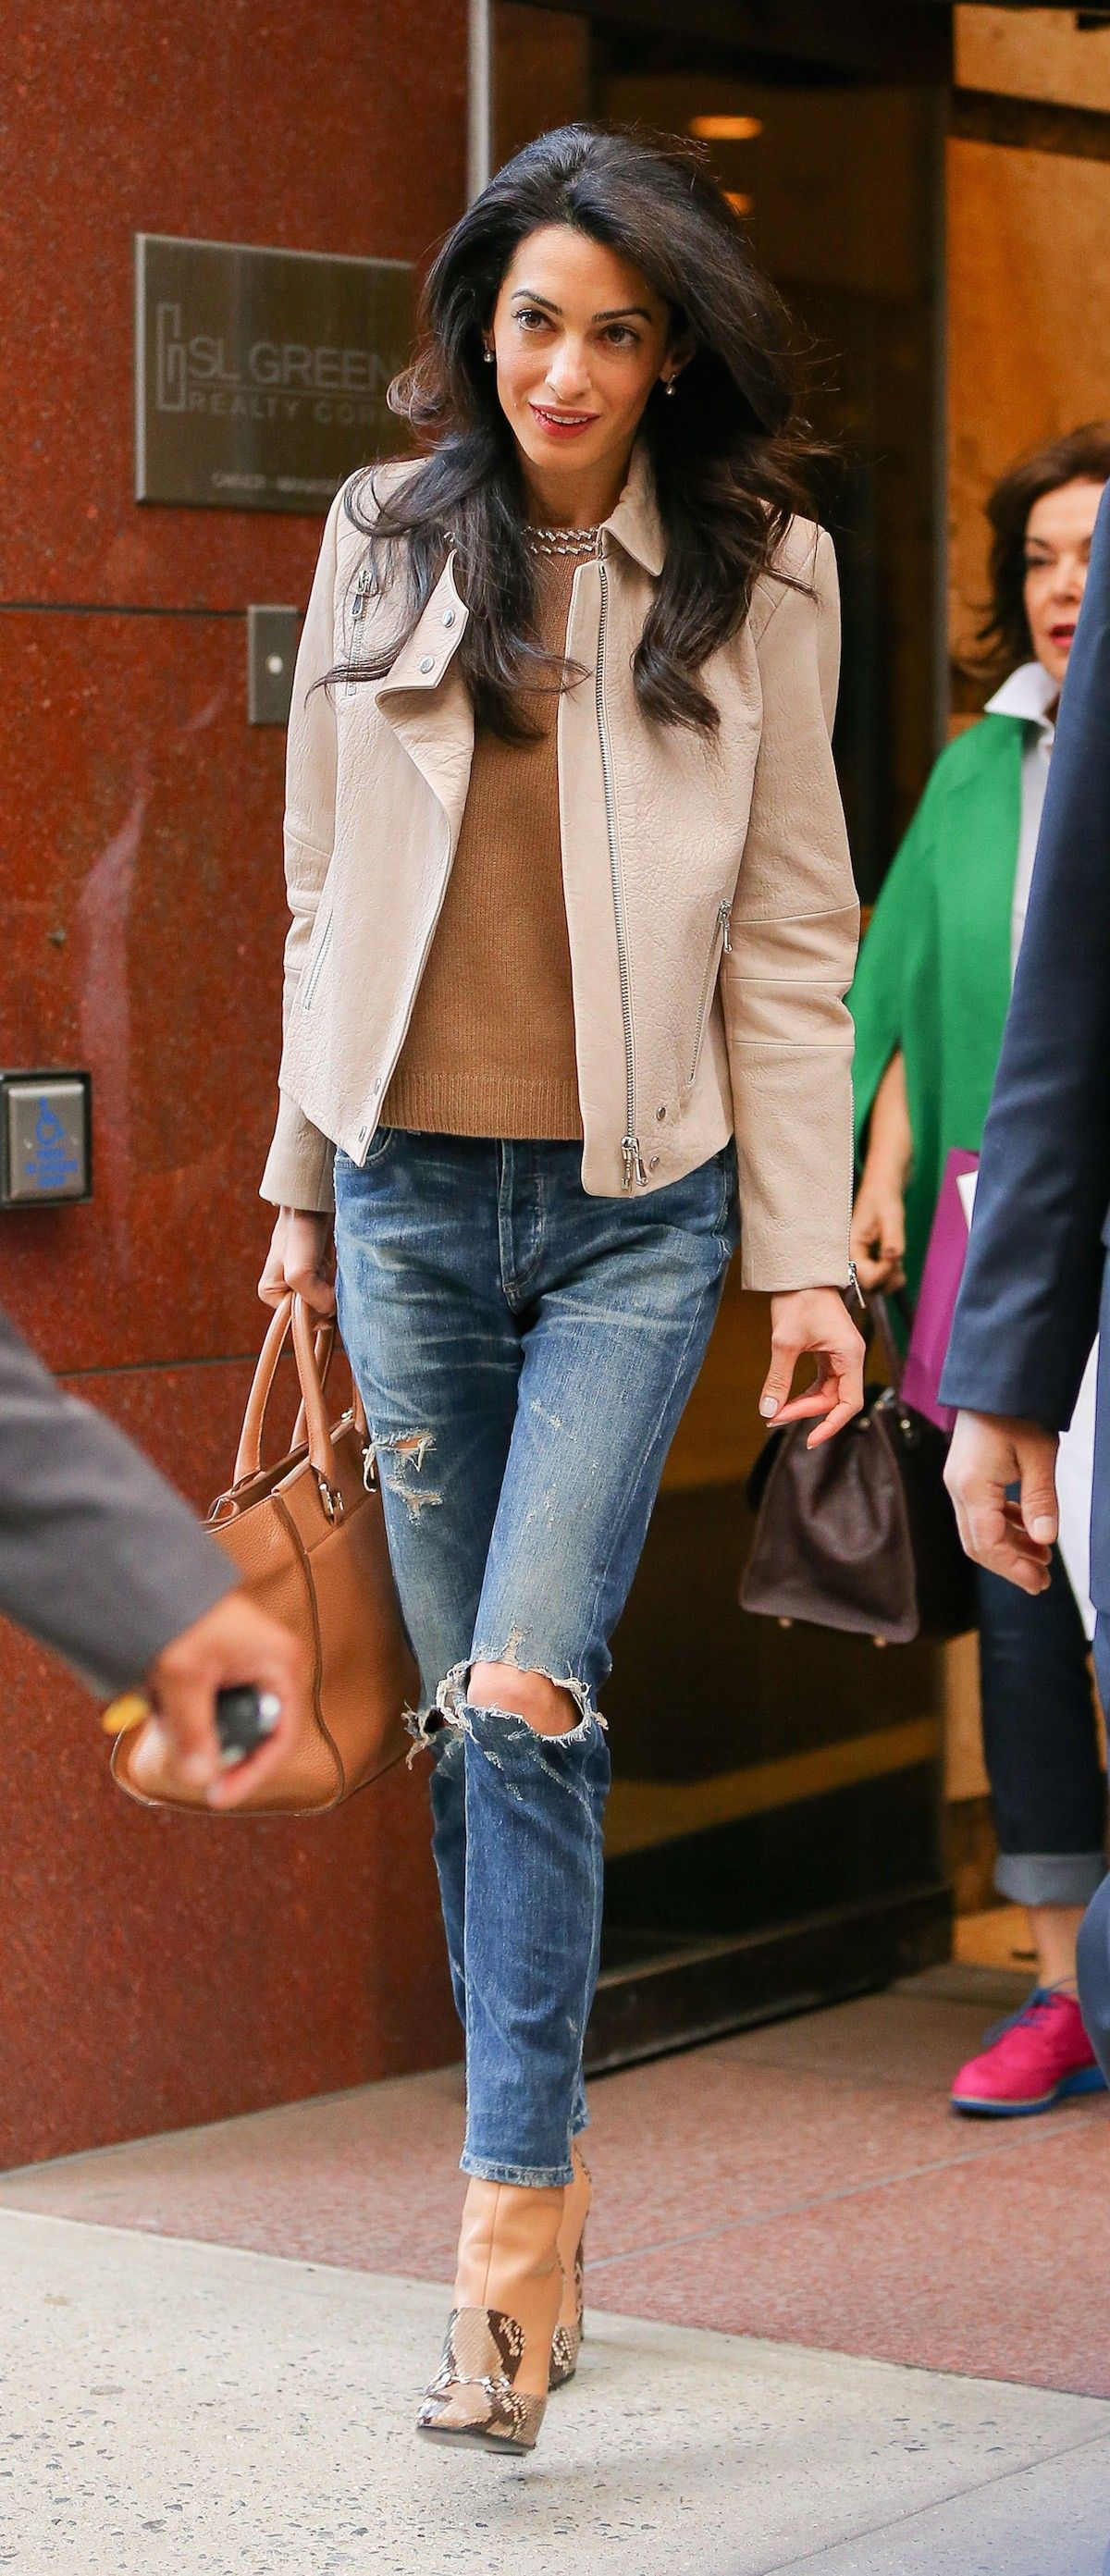 5077befe6b The barrister proves that ripped jeans can be polished with the addition of  a structured jacket and heels.